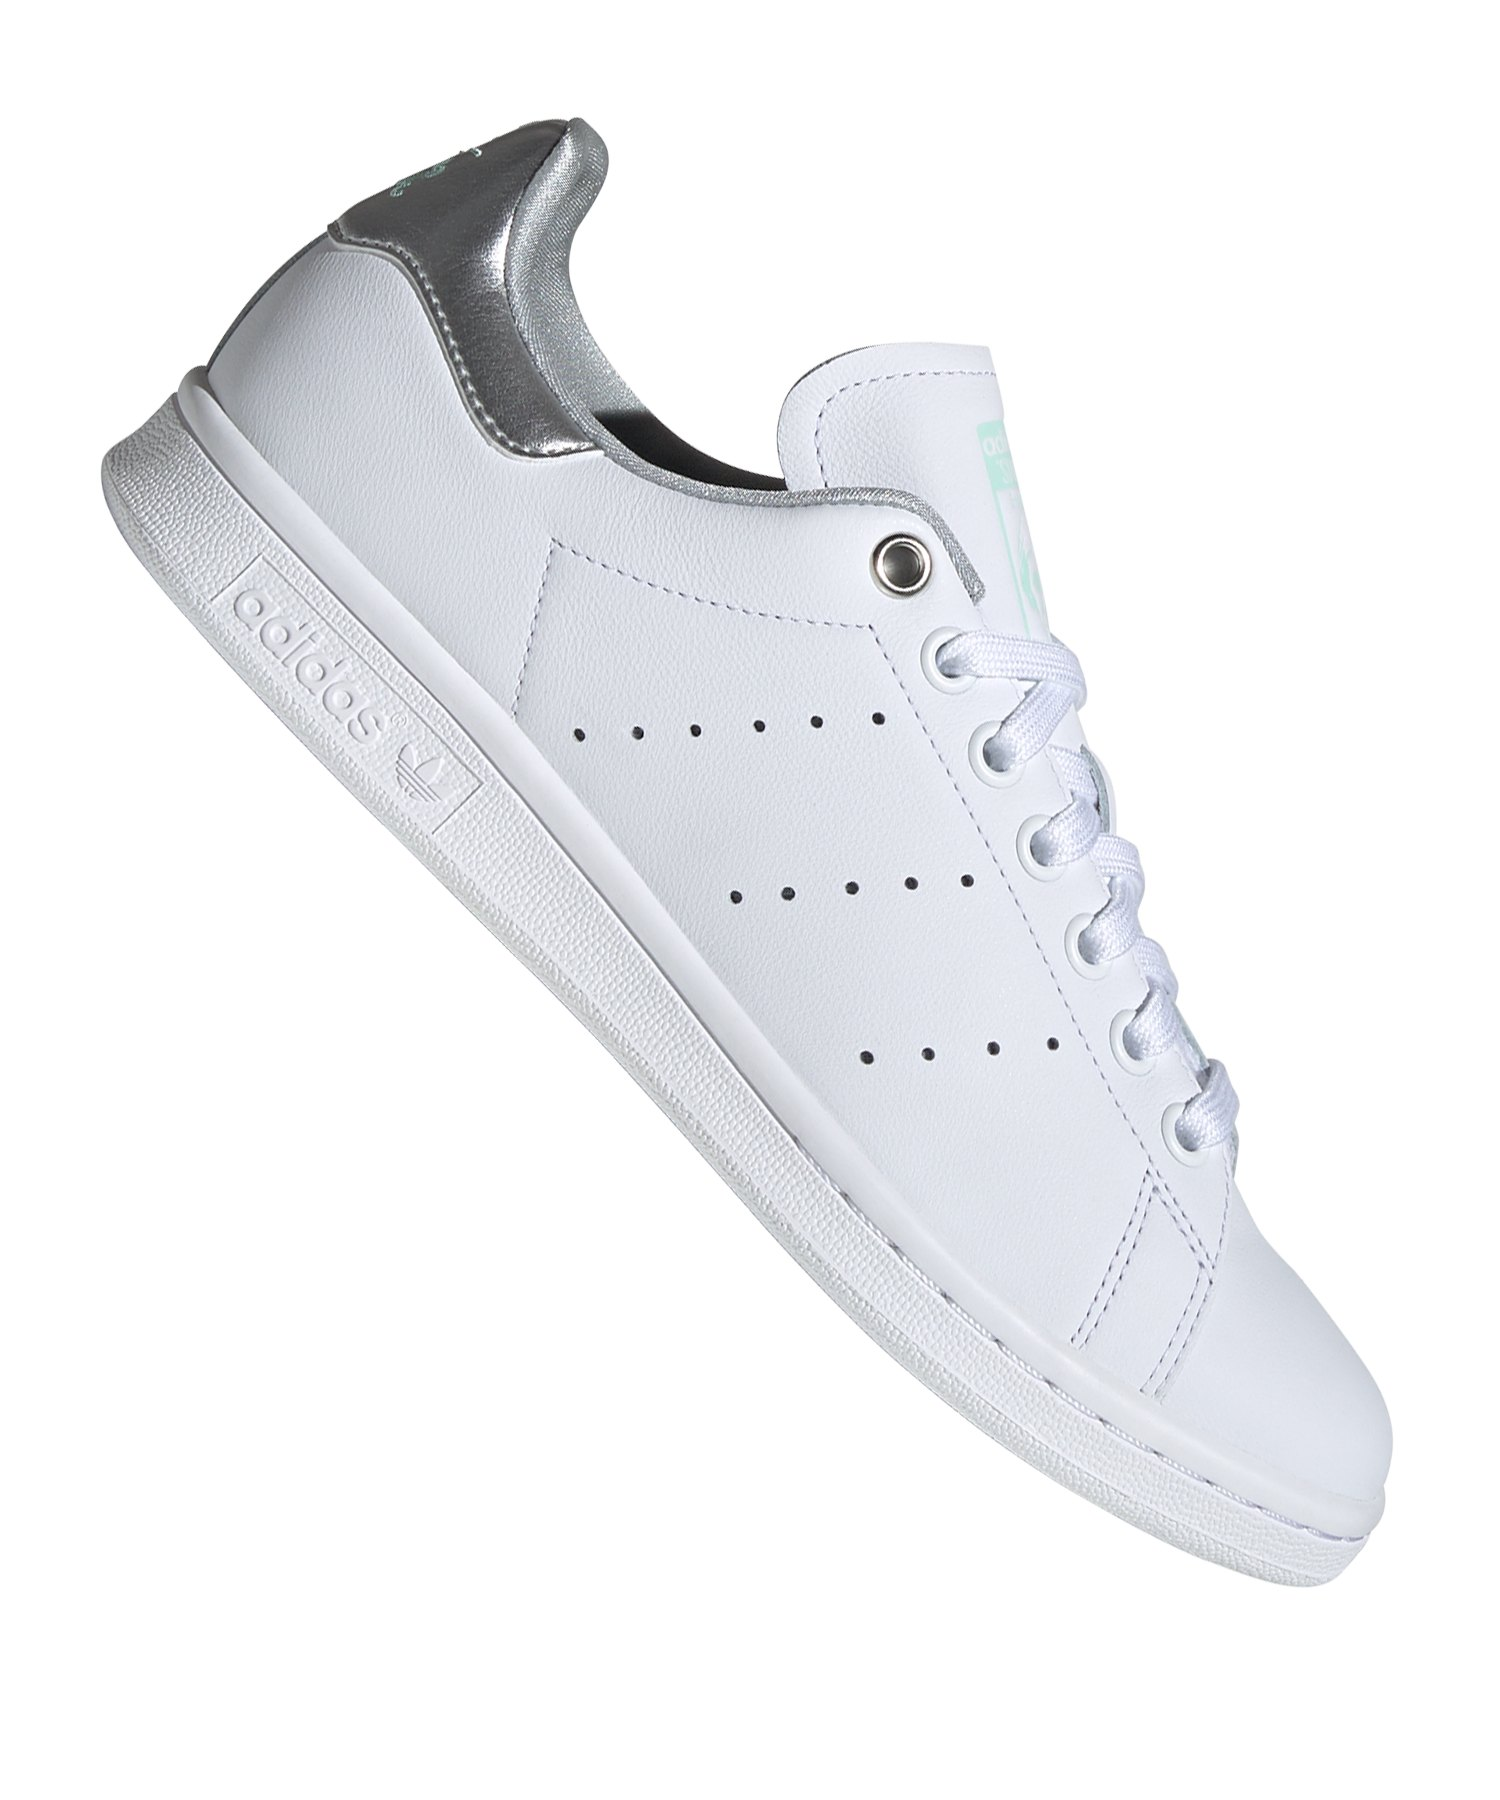 adidas Originals Stan Smith Sneaker Damen Weiss Silber